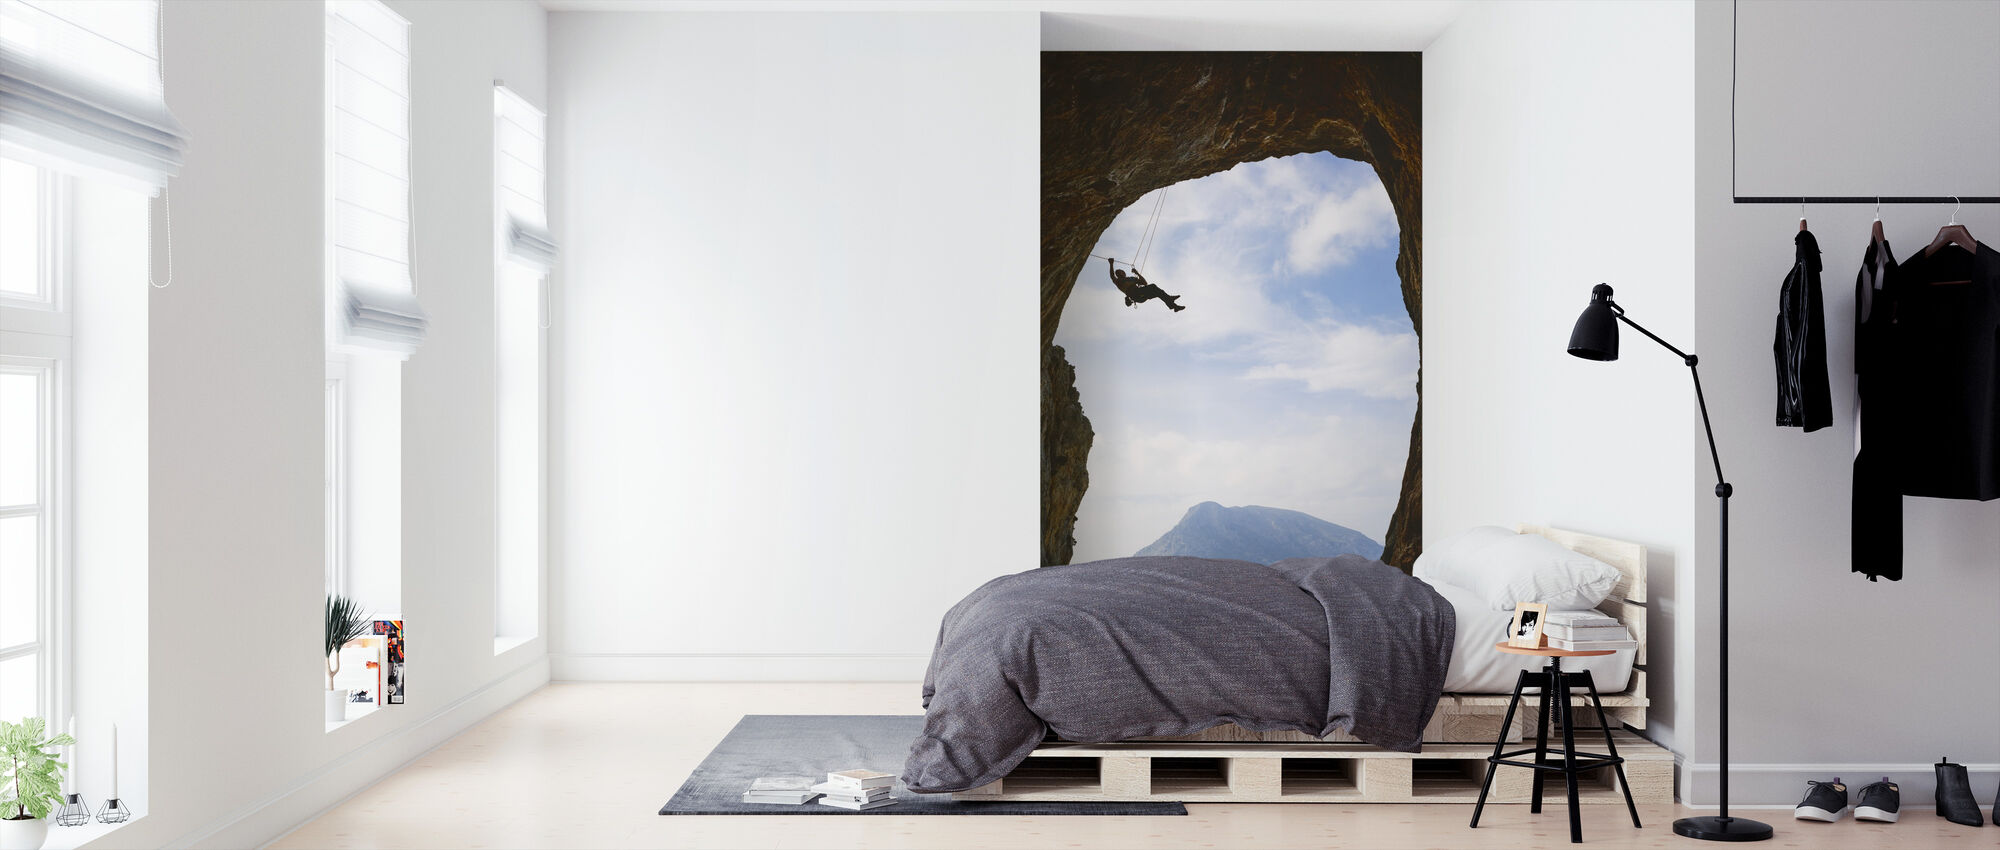 Mountain Climbing - Wallpaper - Bedroom